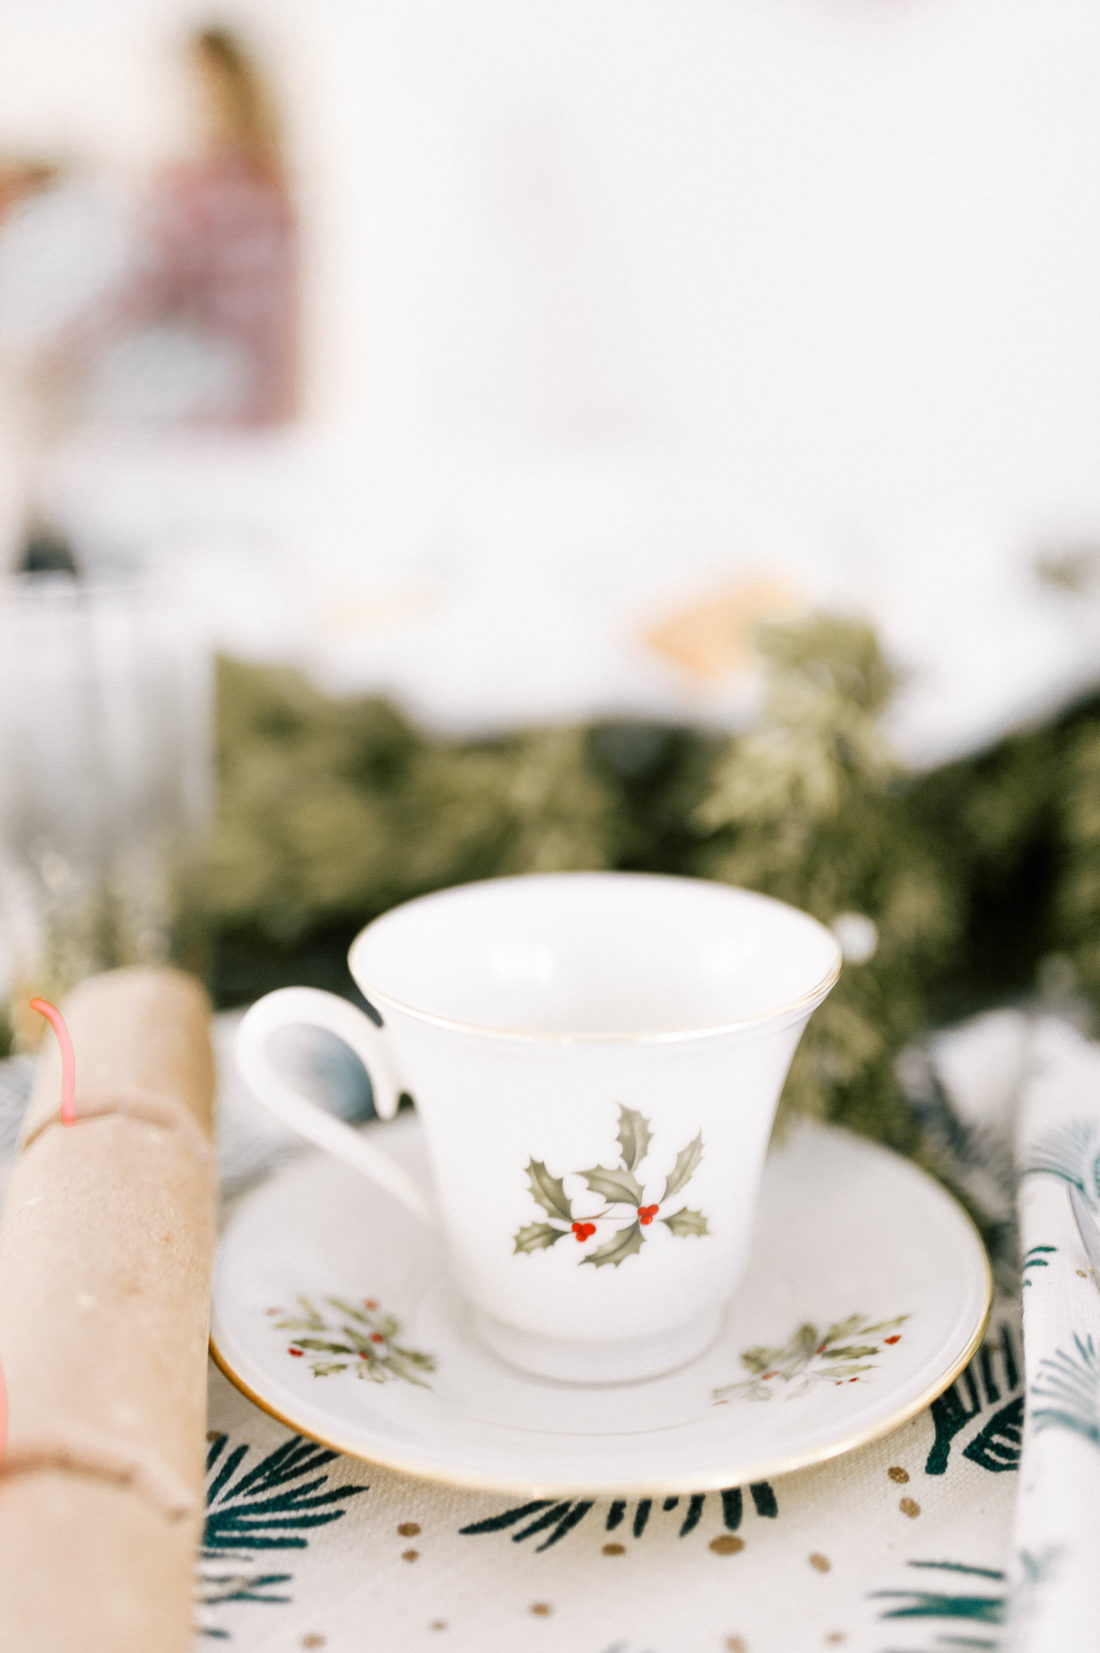 A vintage cup and saucer at Eva Amurri Martino's brunch table